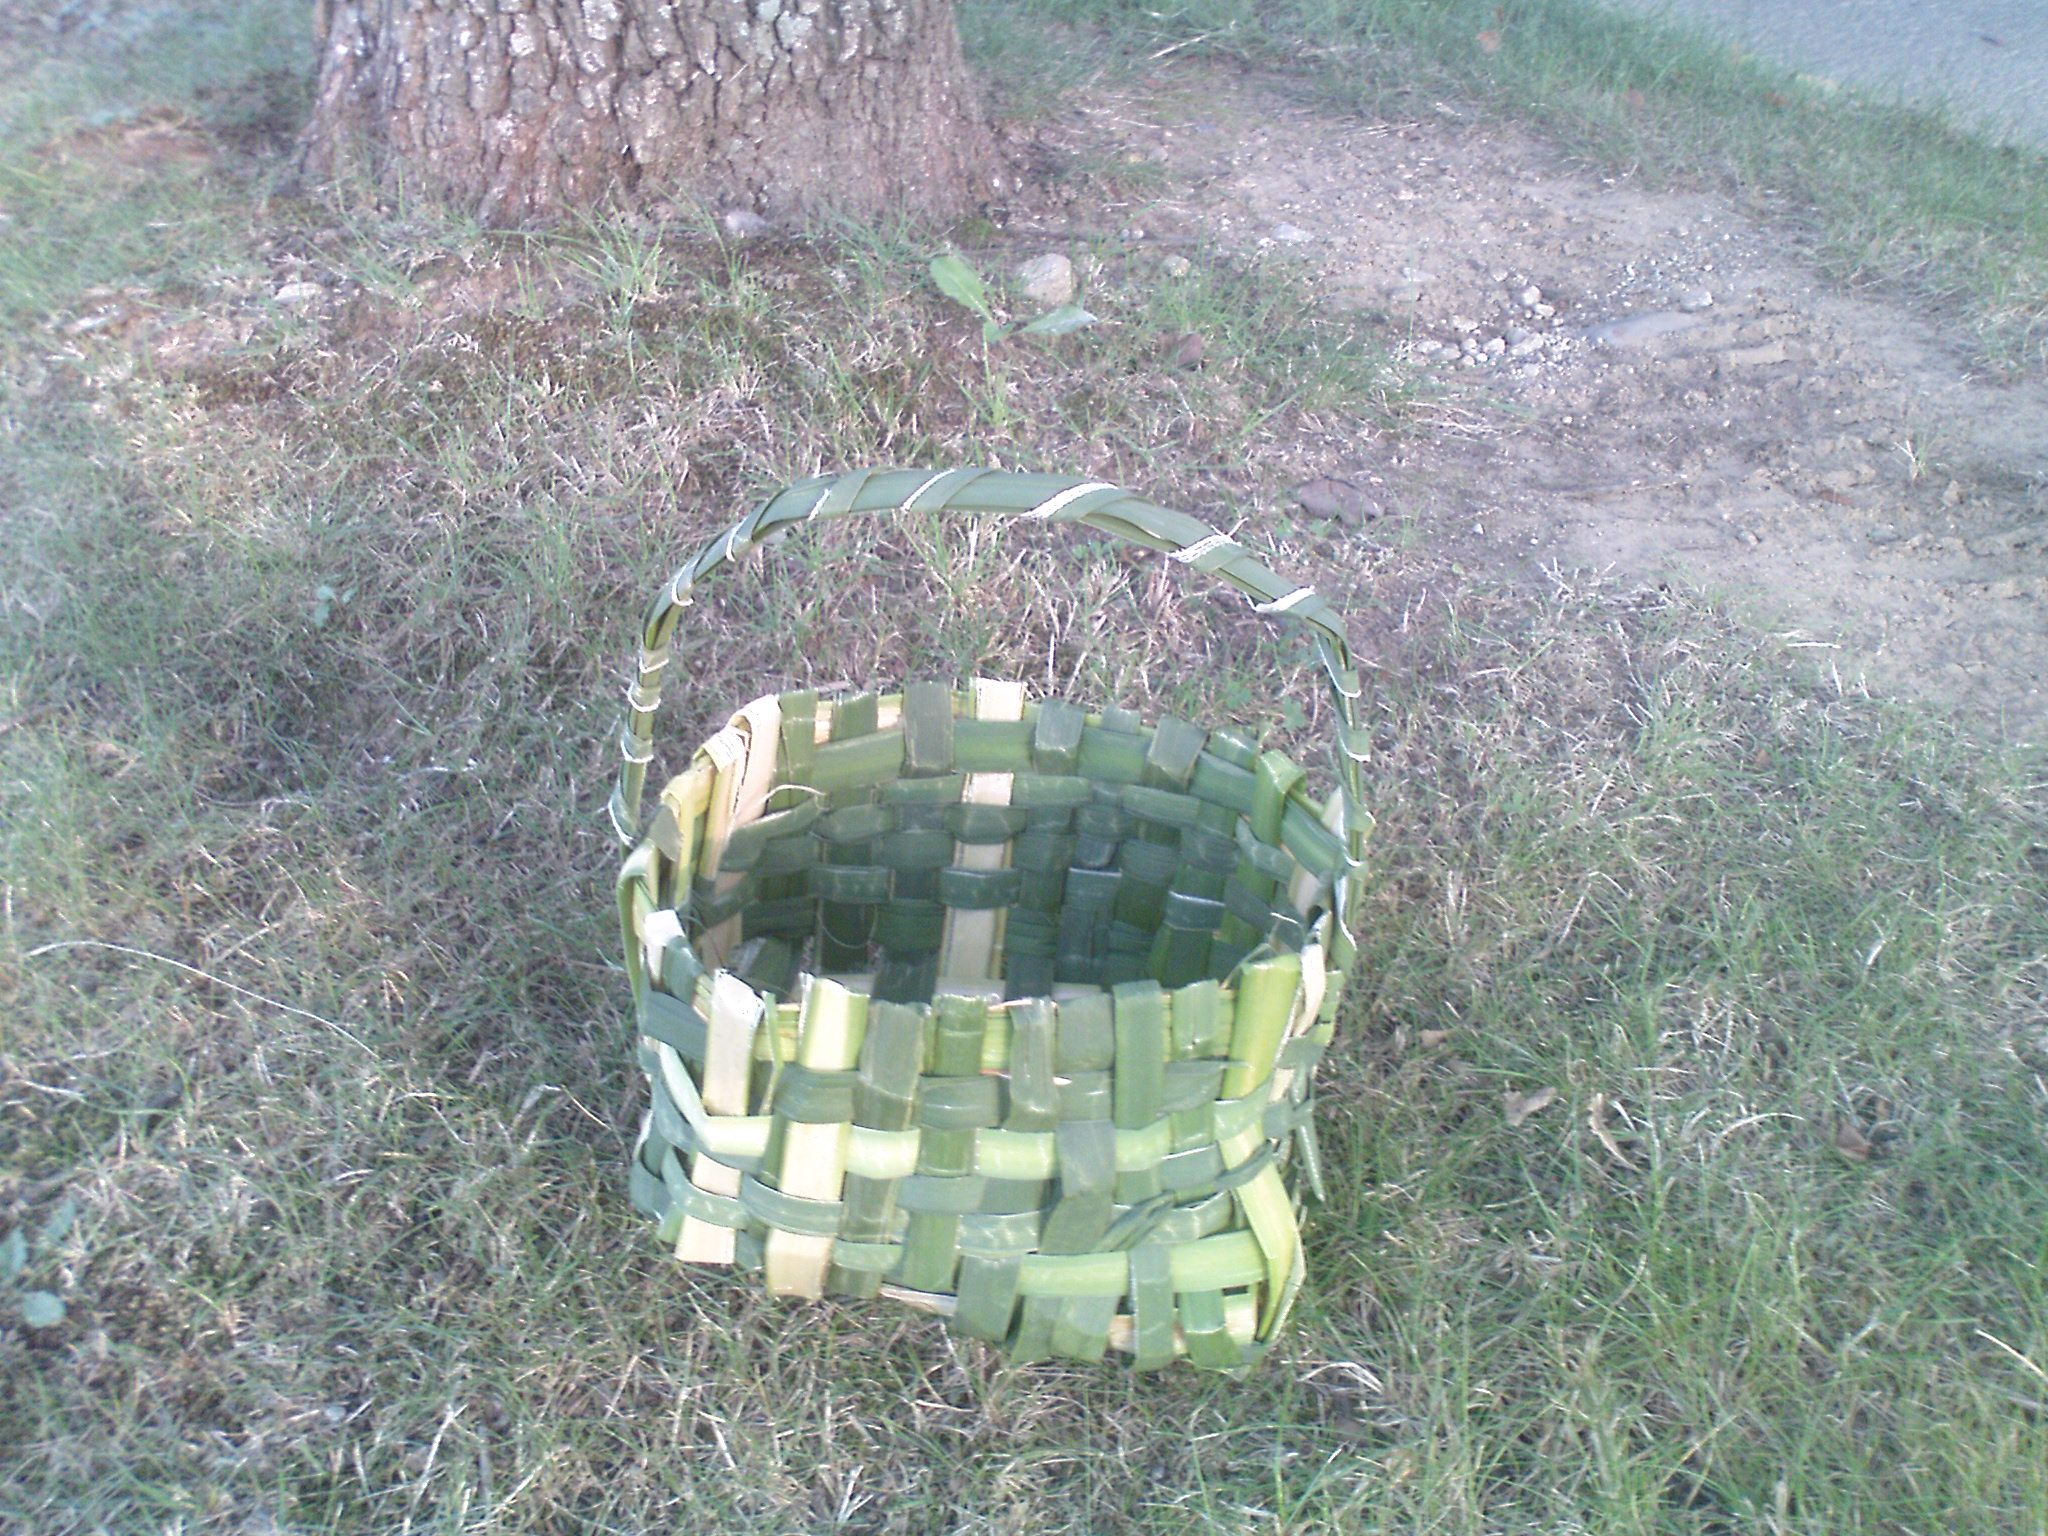 cattail basket. I needed something to pick some berries could not wait for it to dry out